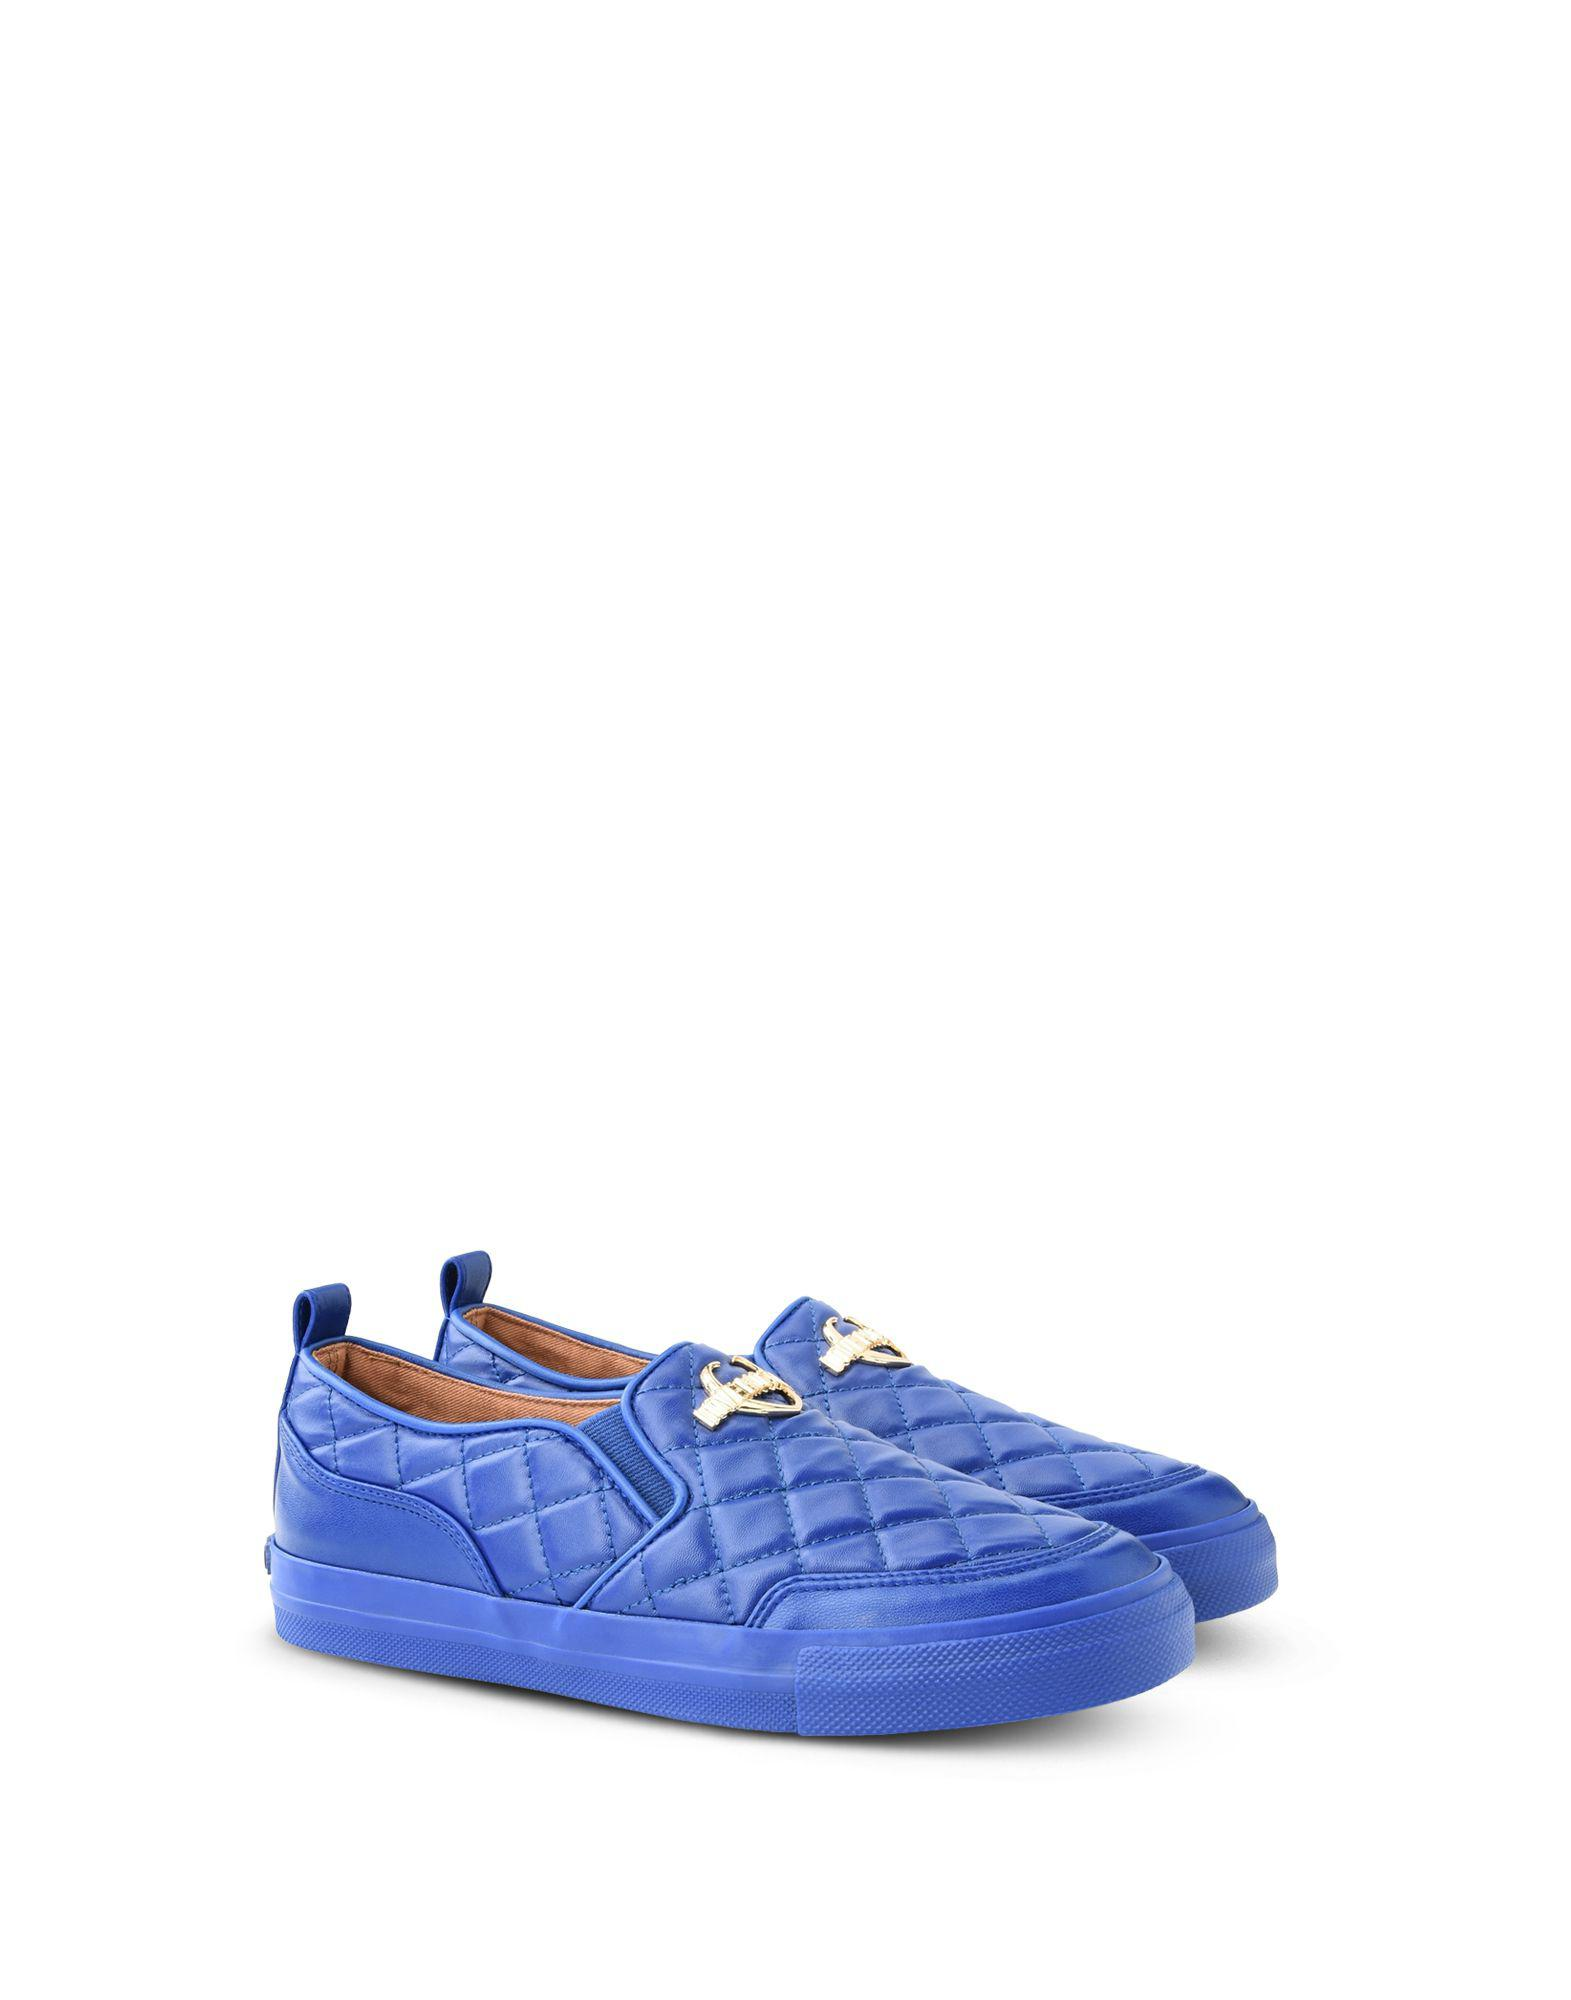 Love Moschino Sneakers in Blue